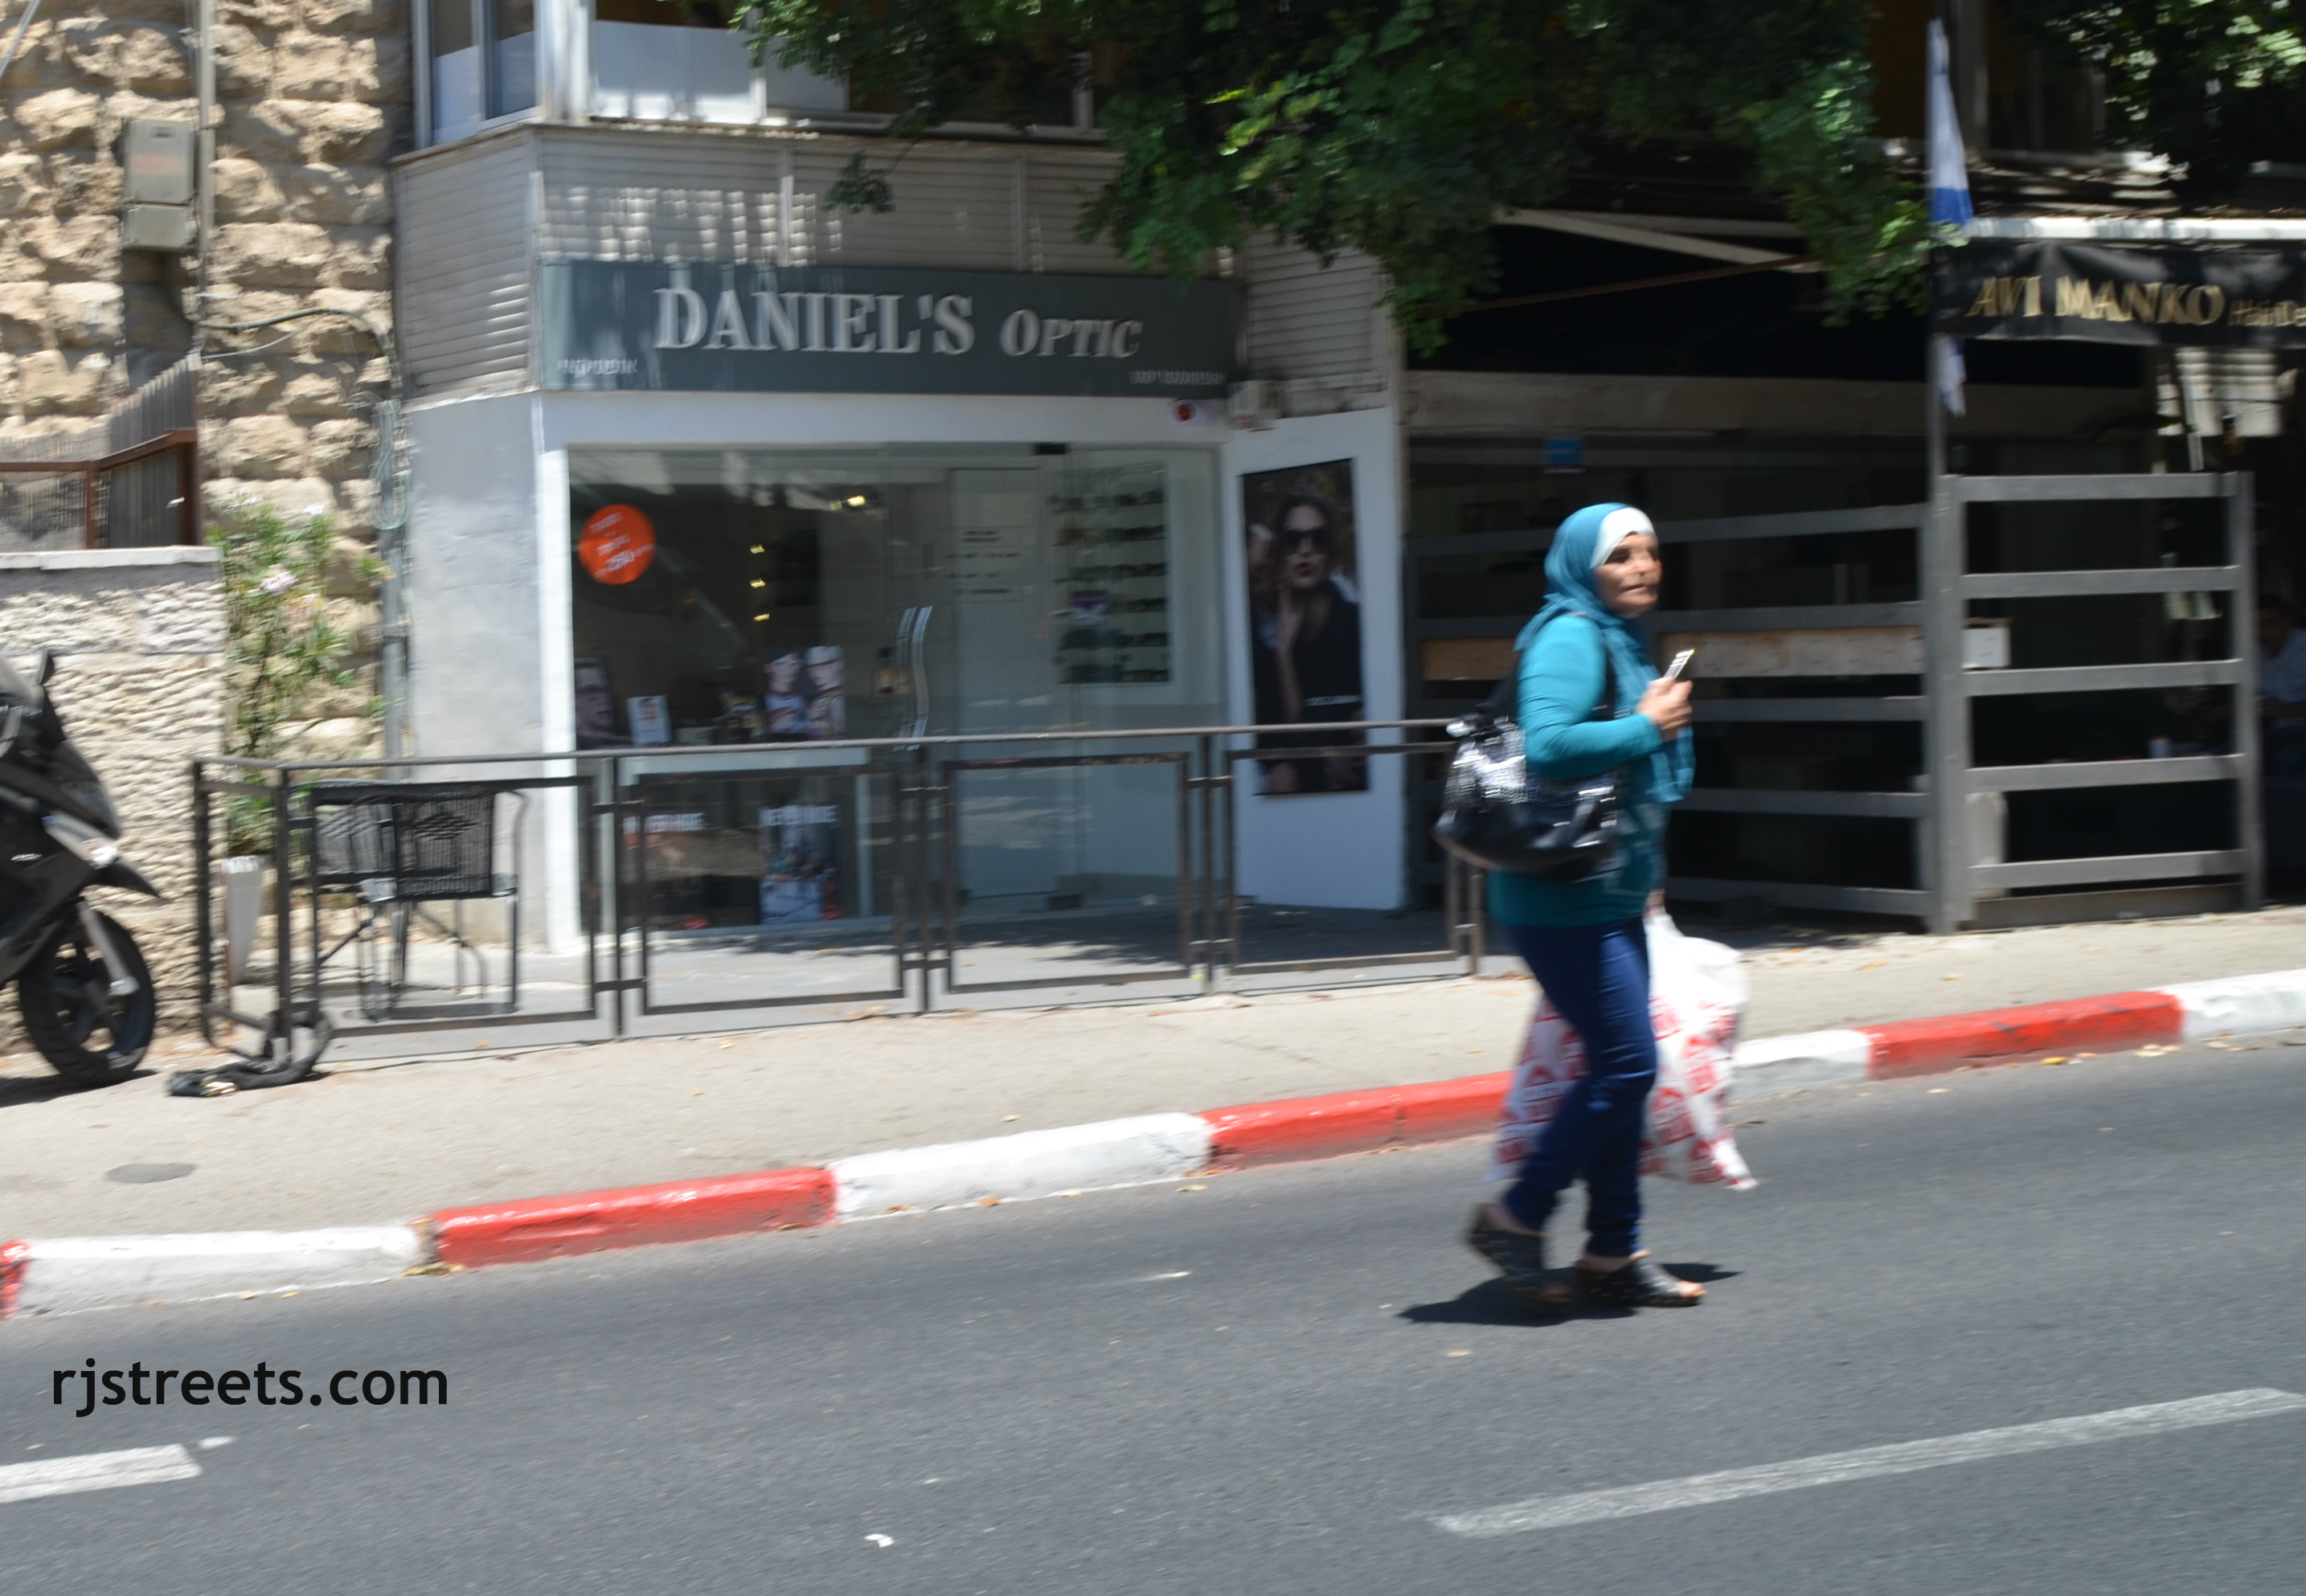 Arab woman Jerusalem,